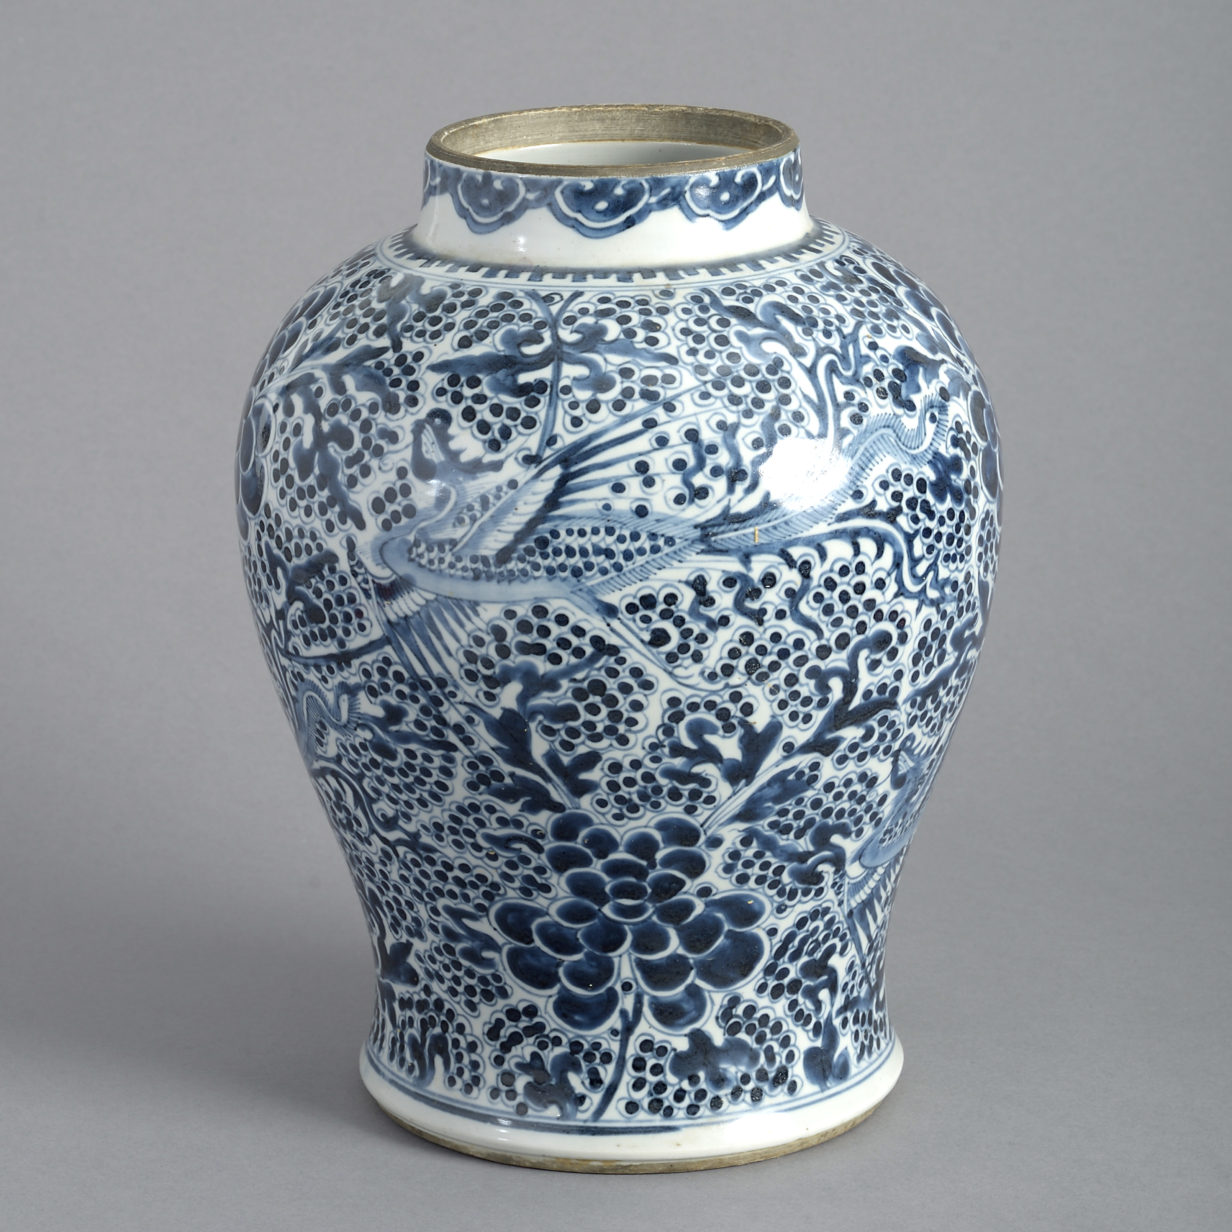 Light Blue and White Kangxi Vase